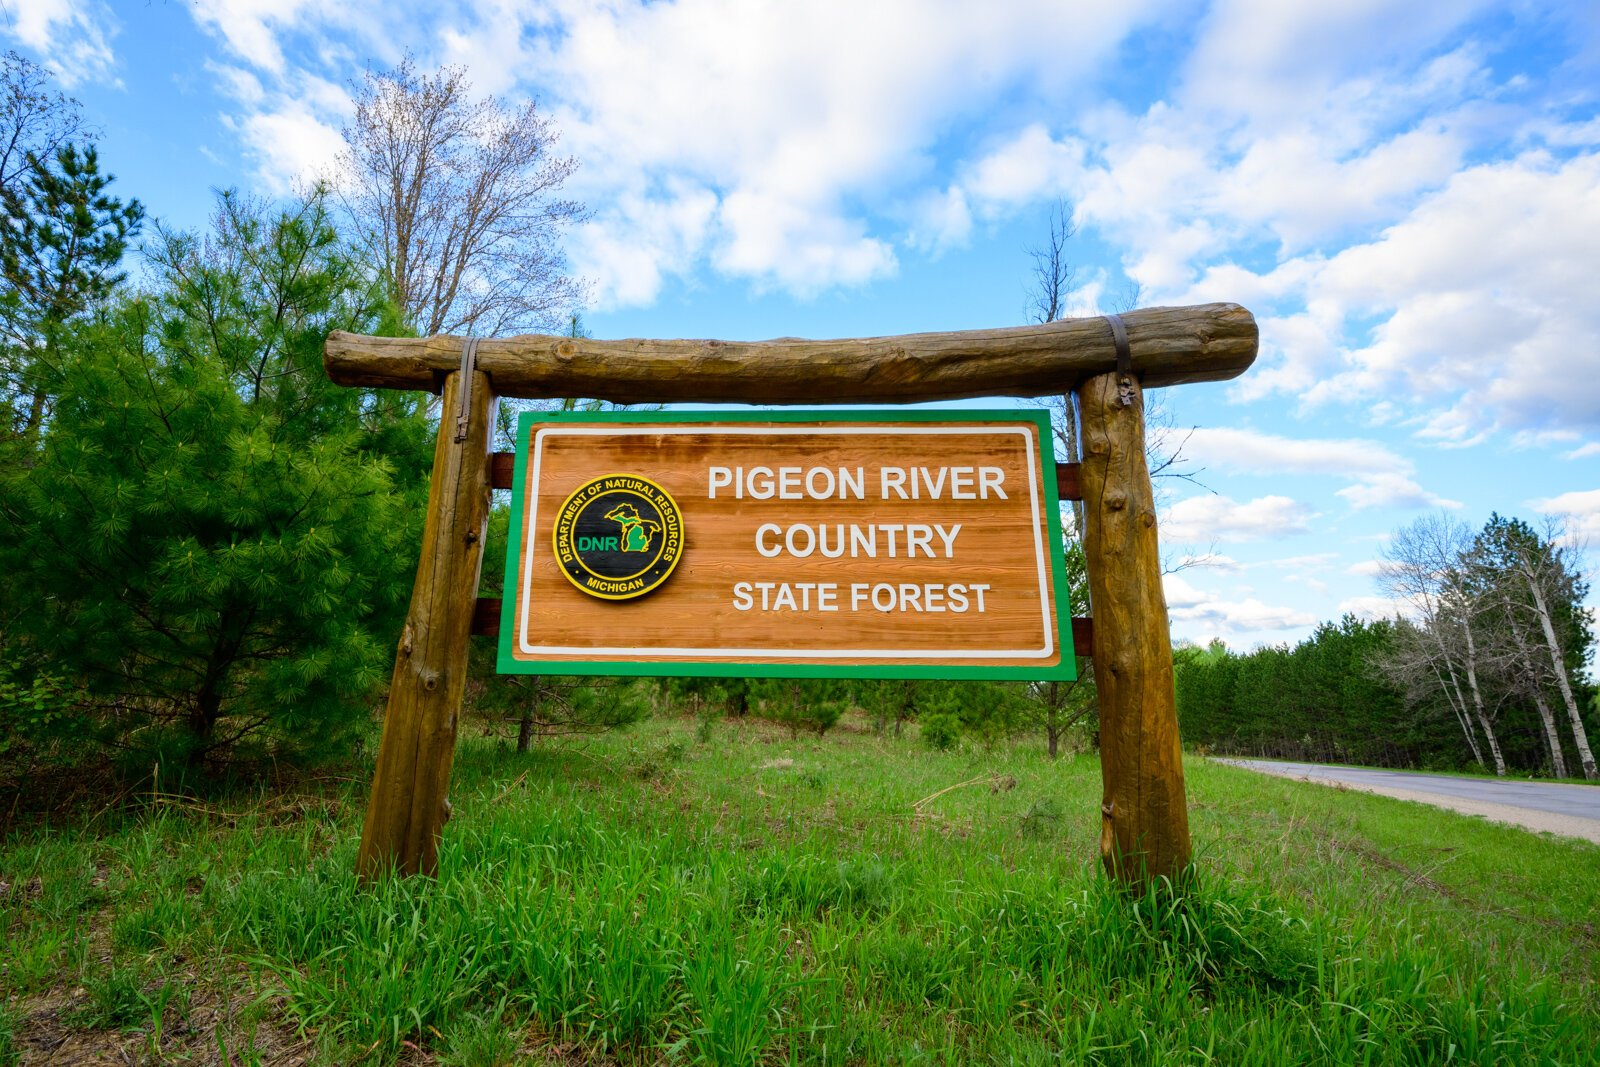 Pigeon River Country State Forest